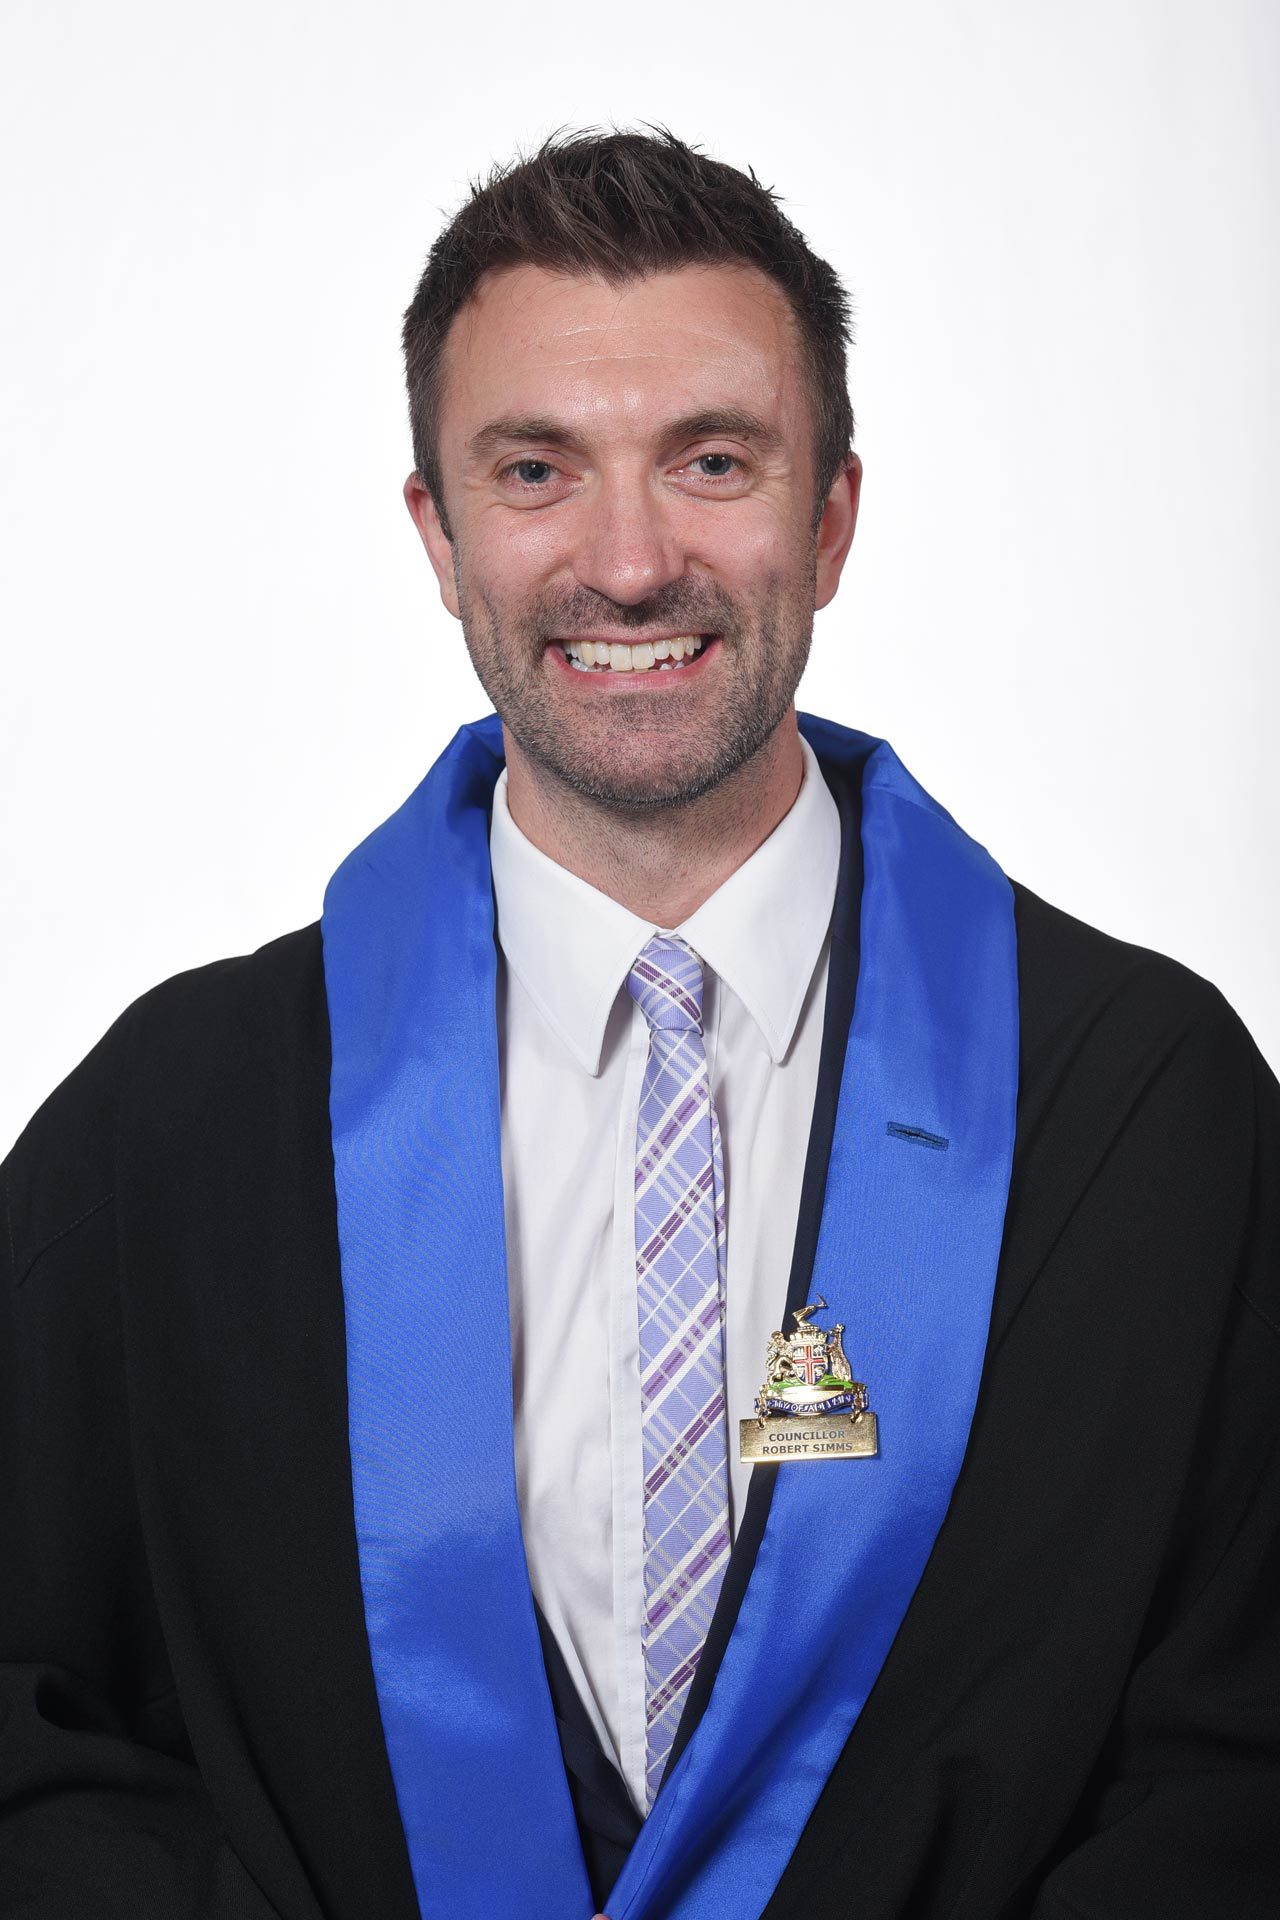 Councillor Rob Simms